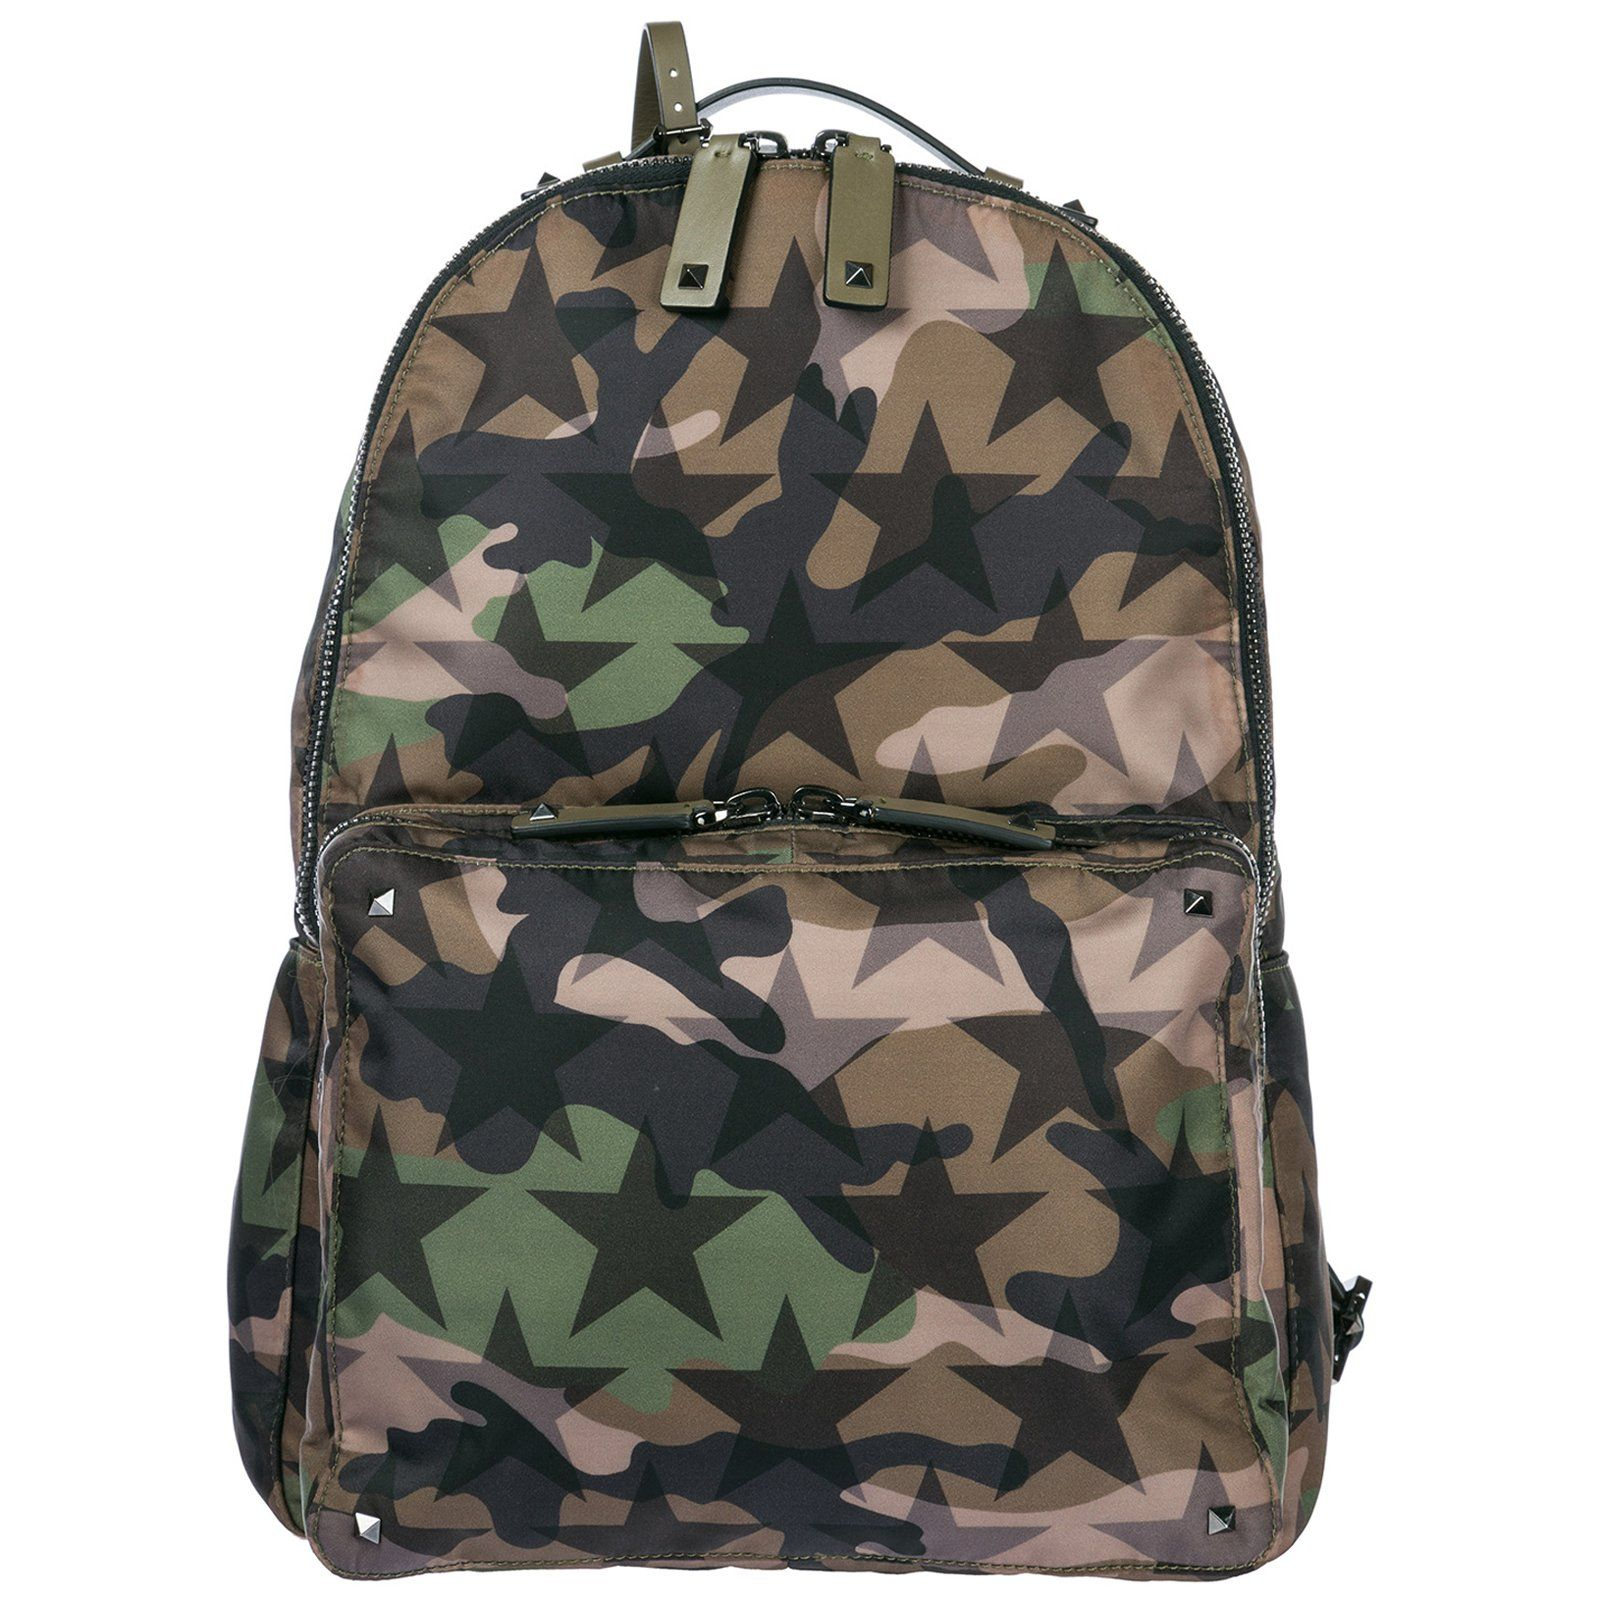 7d73c9a1b7 VALENTINO VALENTINO CAMOUFLAGE STAR BACKPACK. #valentino #bags #nylon # backpacks